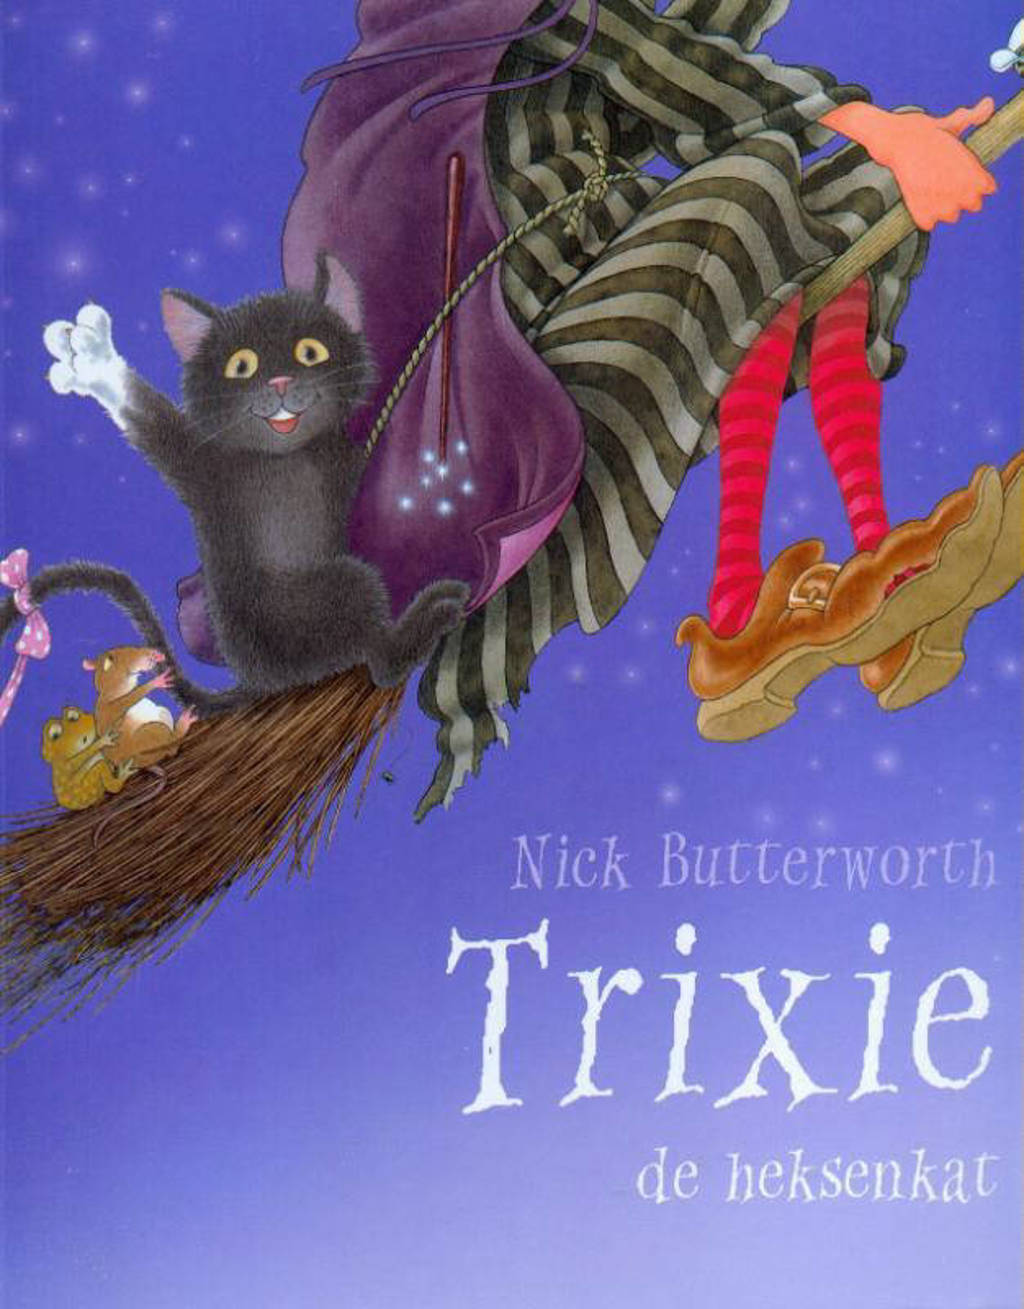 Trixie de heksenkat - Nick Butterworth